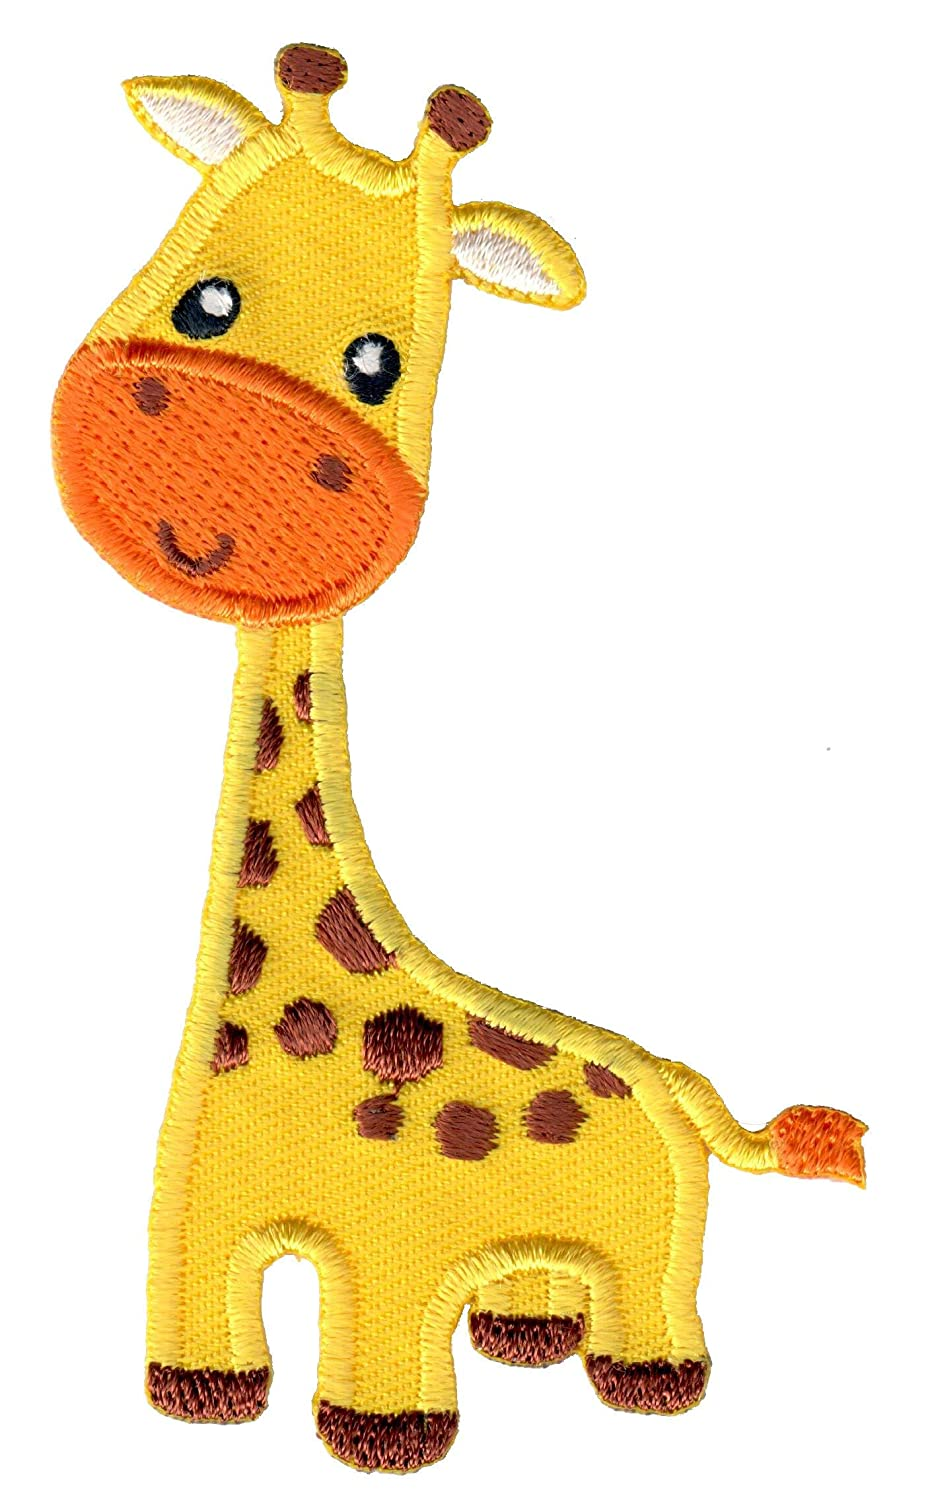 Giraffe PatchMommy Iron On Patch Appliques for Kids Children